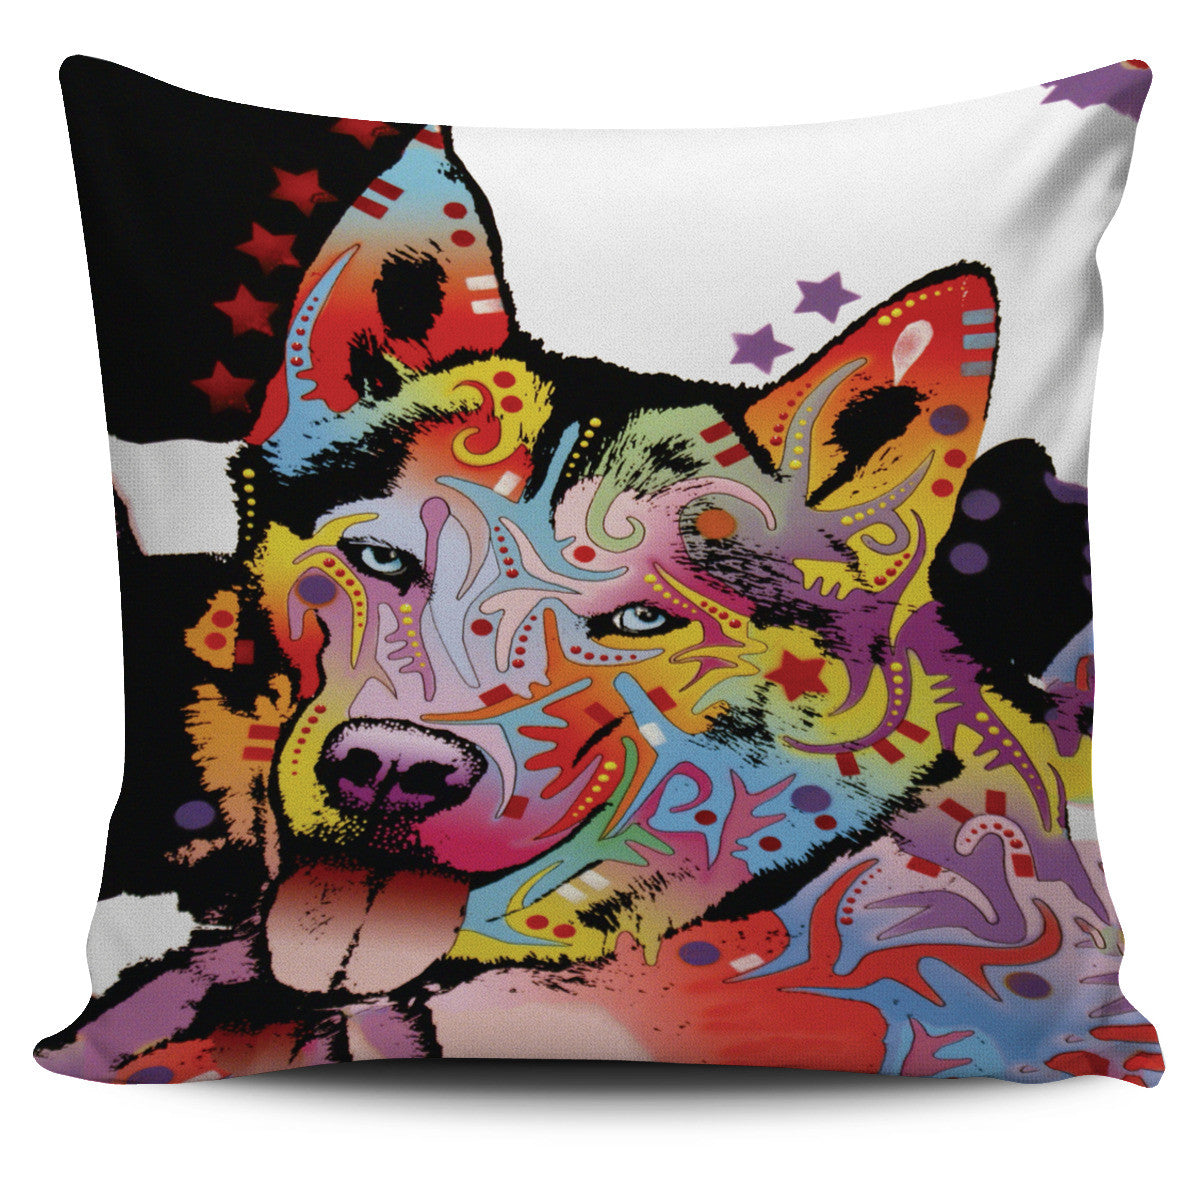 Siberian Series Pillow Covers Offer